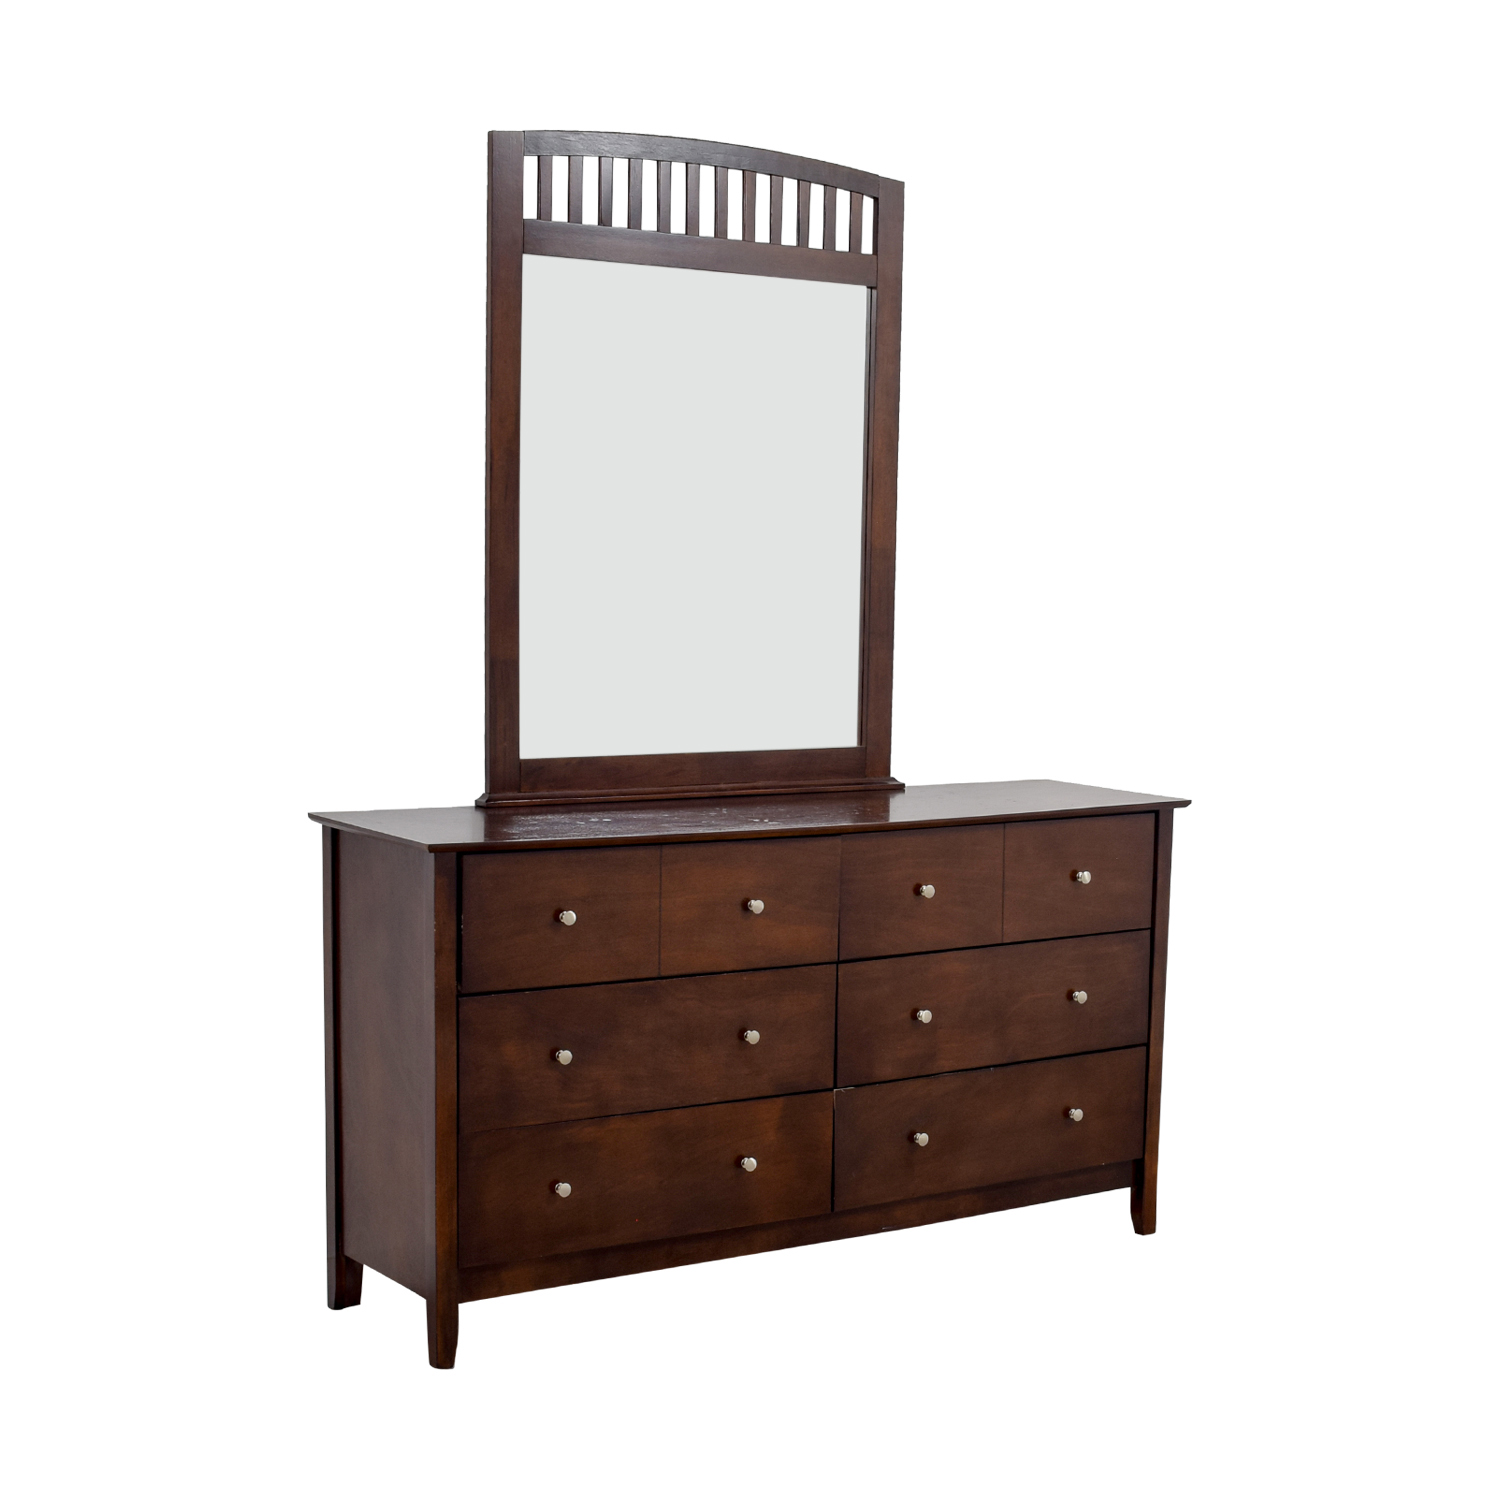 Bobs Furniture Bobs Furniture Eight-Drawer Dresser with Caged Mirror nyc